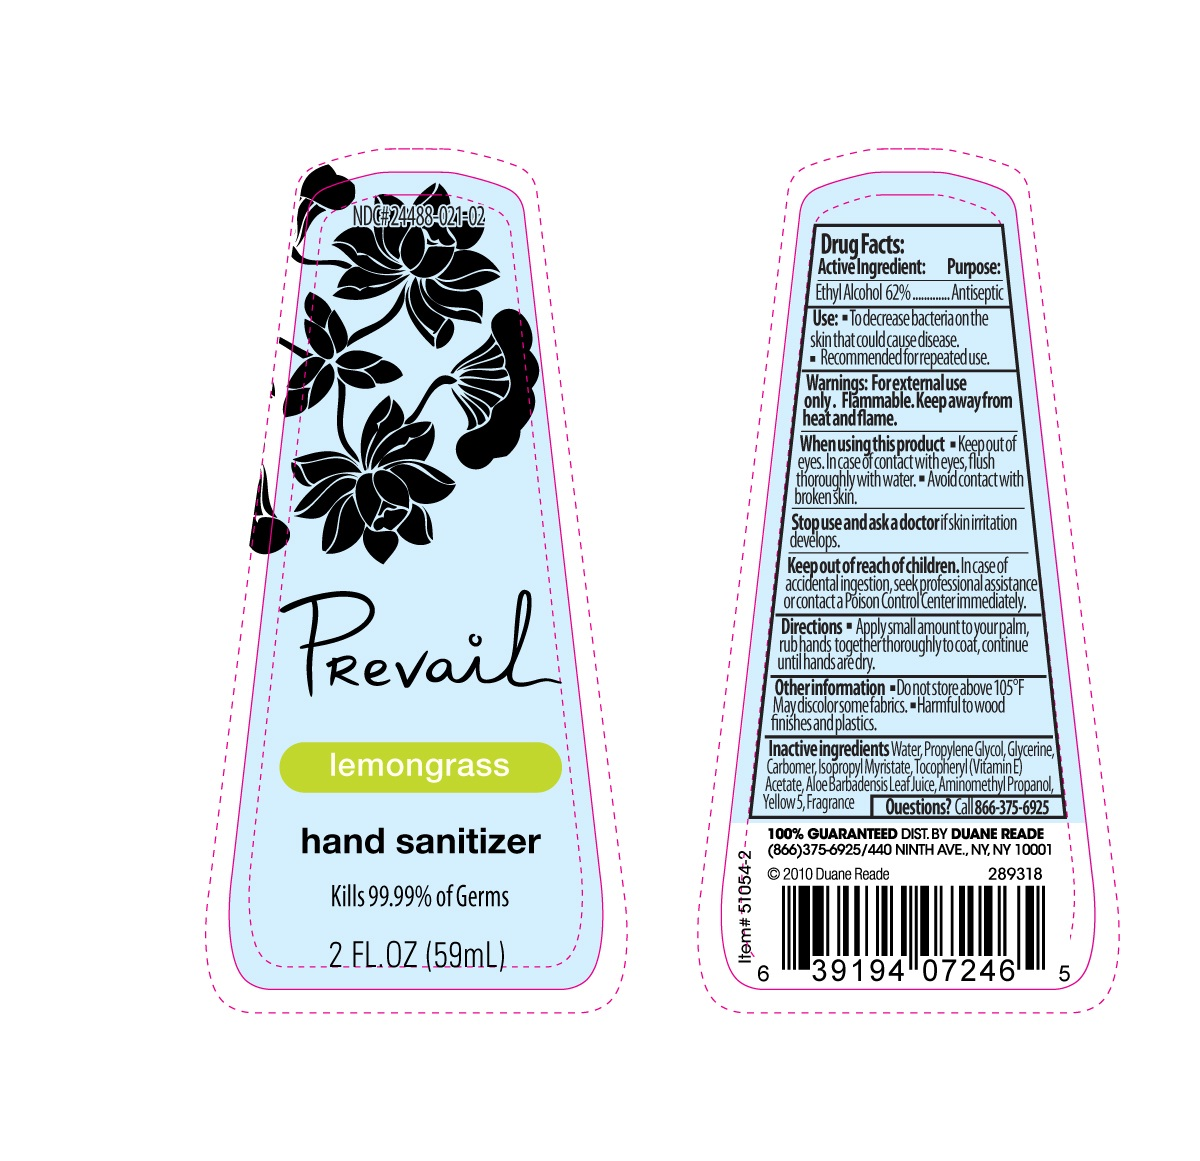 image of lemongrass label